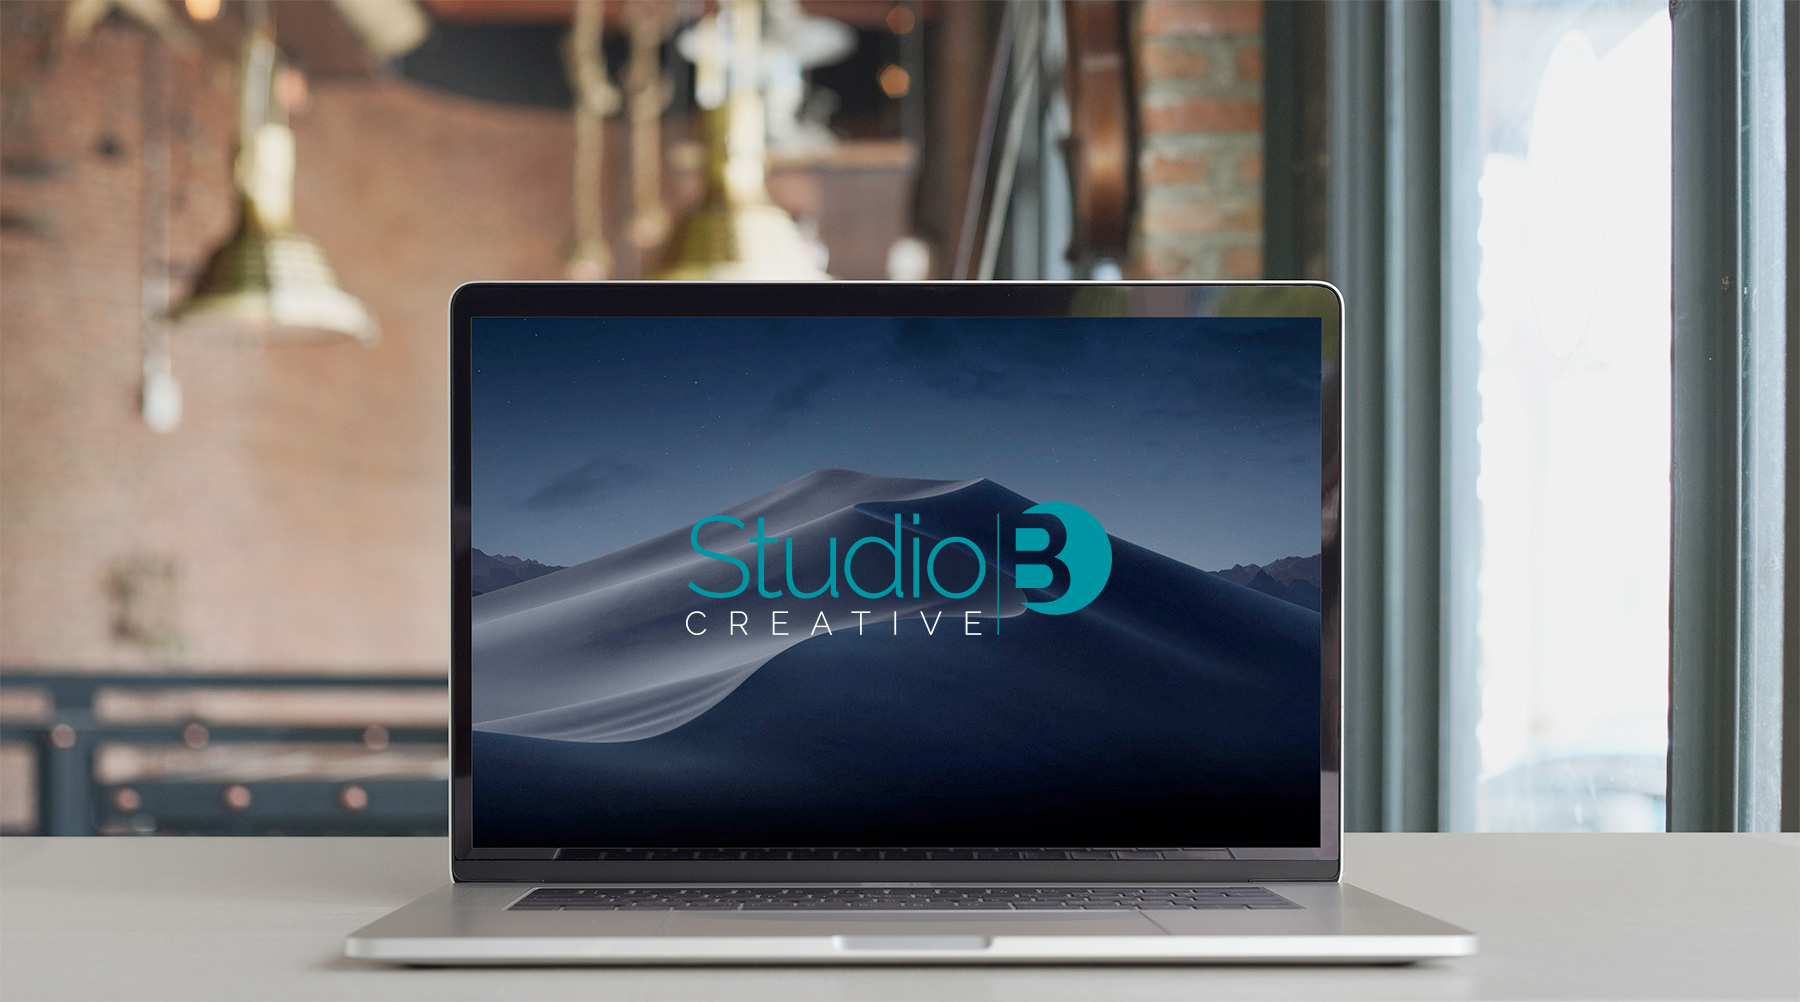 About Studio B Creative